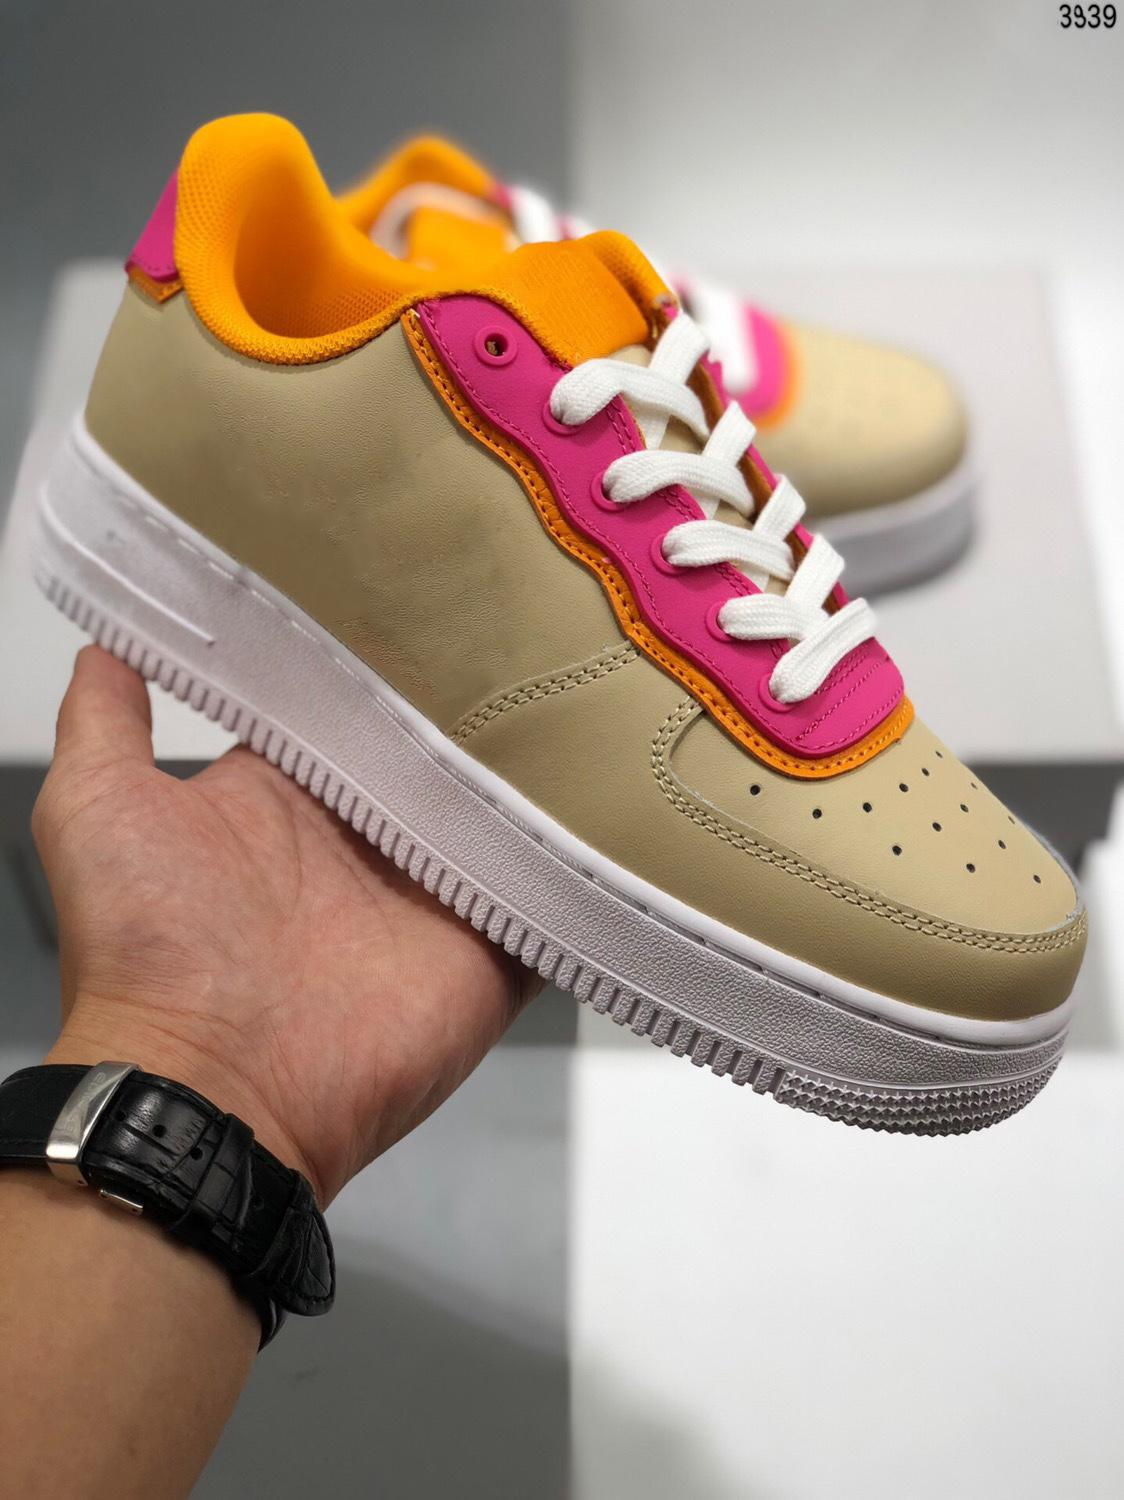 Most Hot Sale Genuine Leather Sports Shoes Woman Platform Triple Kanye Style Casual Shoes Fashion Popular Boy Girl Trend Sneakers Shoes